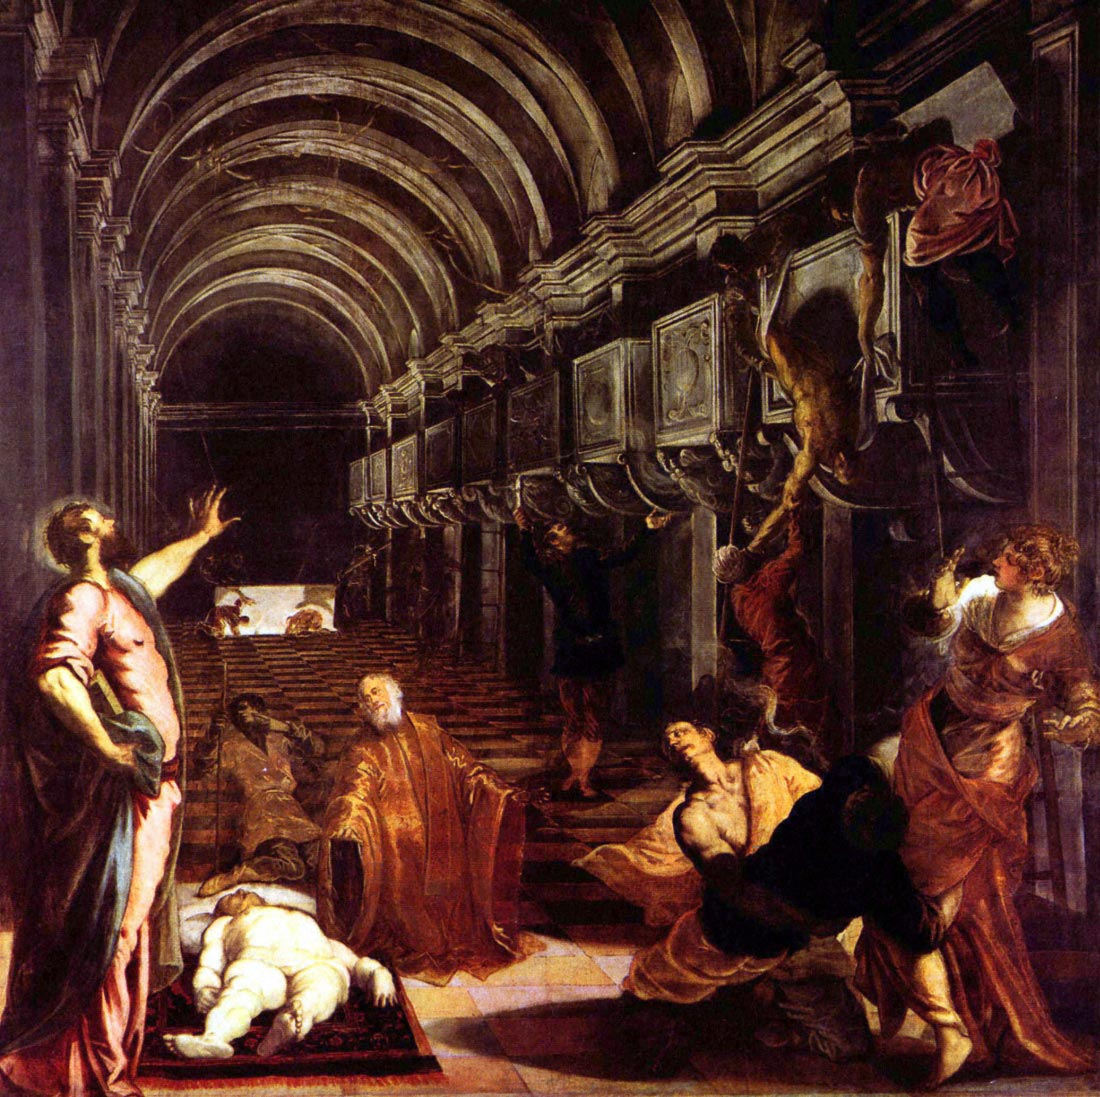 Discovery of the corpse of St. Mark - Tintoretto